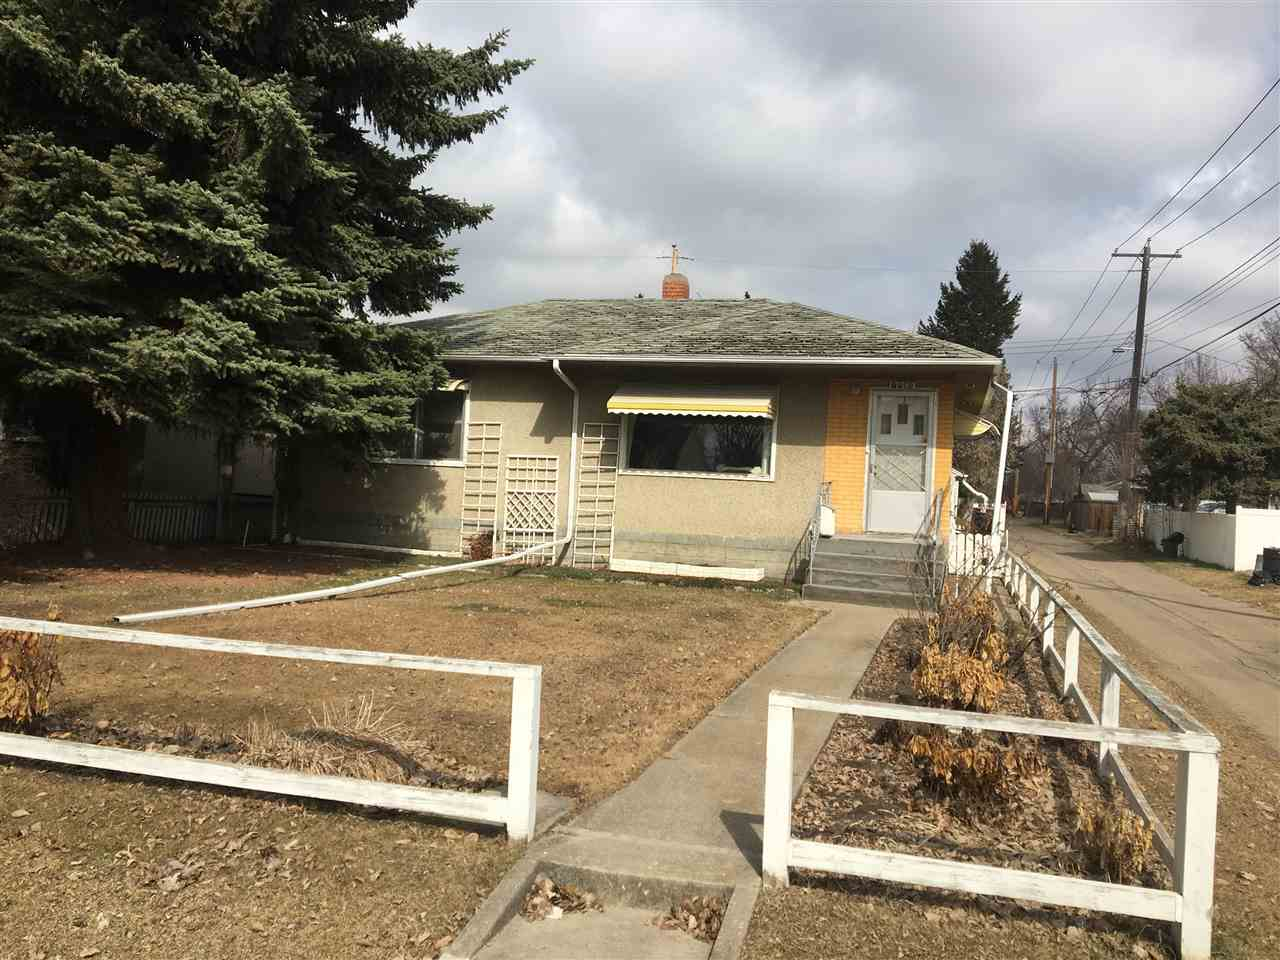 """Attention Investors - Infill Opportunity in King Edward Park. Located on a tree lined street across from park, this 800 sq. ft. 2 bed 1 bath house on RF3 46' x 130' lot is a great option for a duplex with alley access on two sides. Property is being sold """"as is, where is"""" seller does not provide any warranty. A current RPR is available to buyer. Easy access to all amenities."""